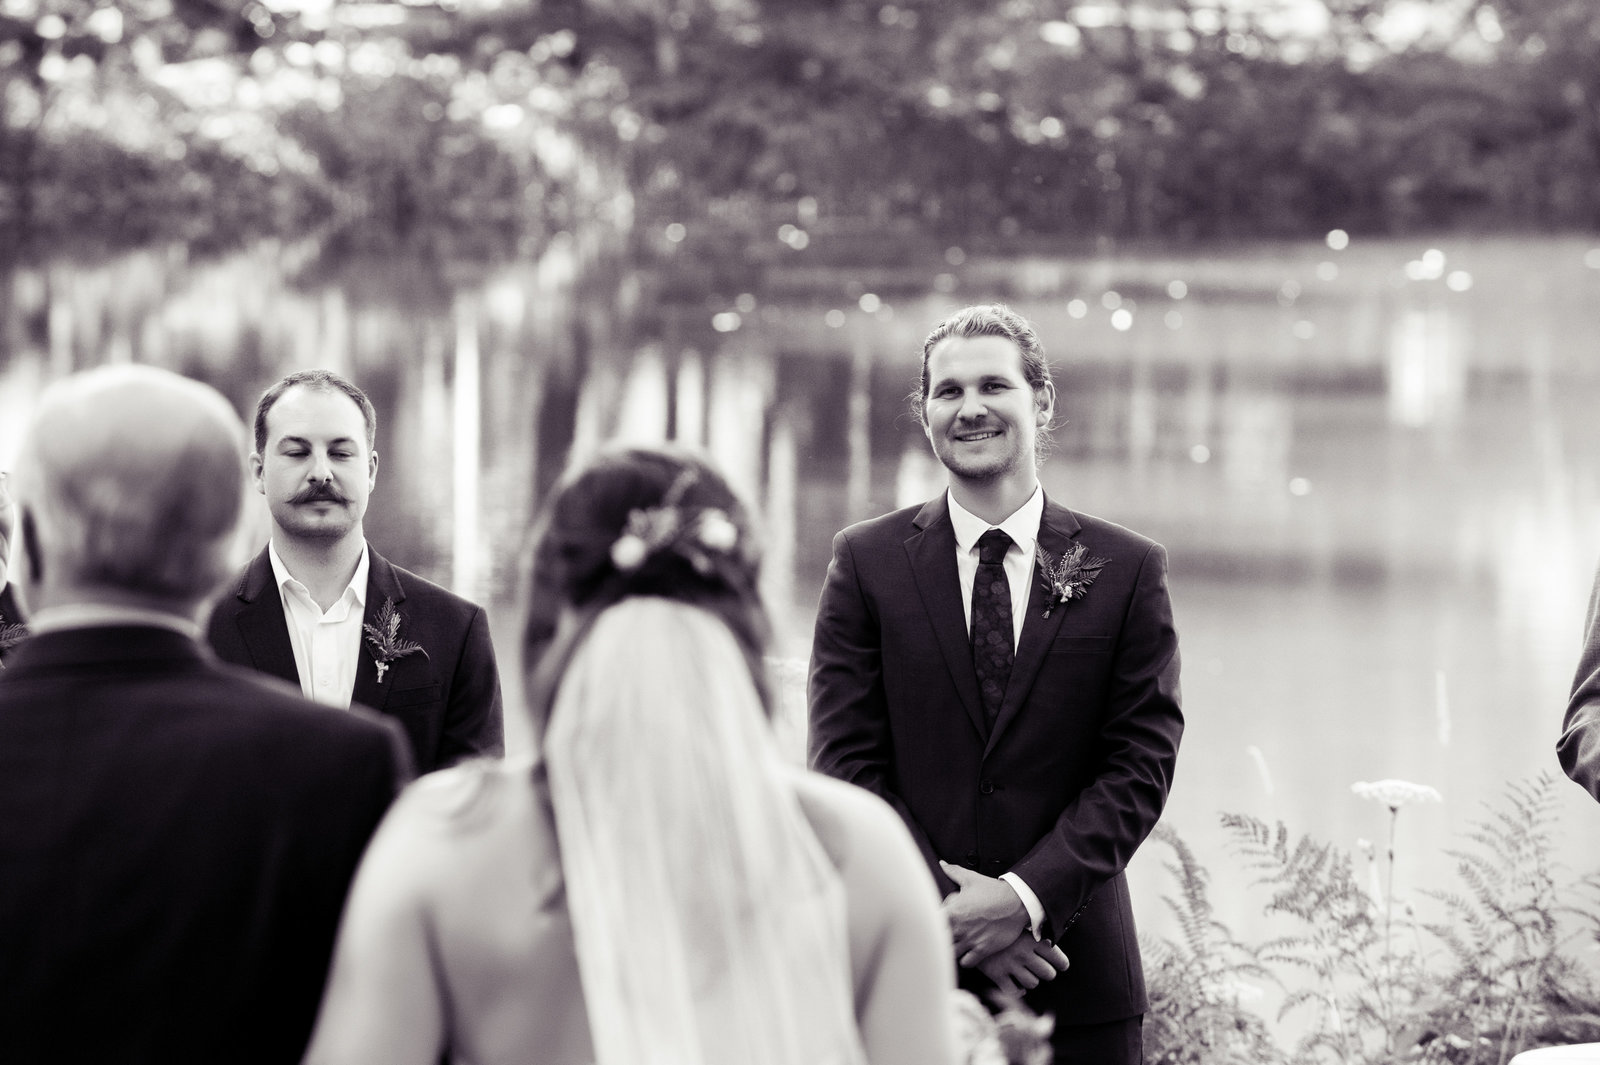 groom smiles at bride as she walks down the aisle with her father